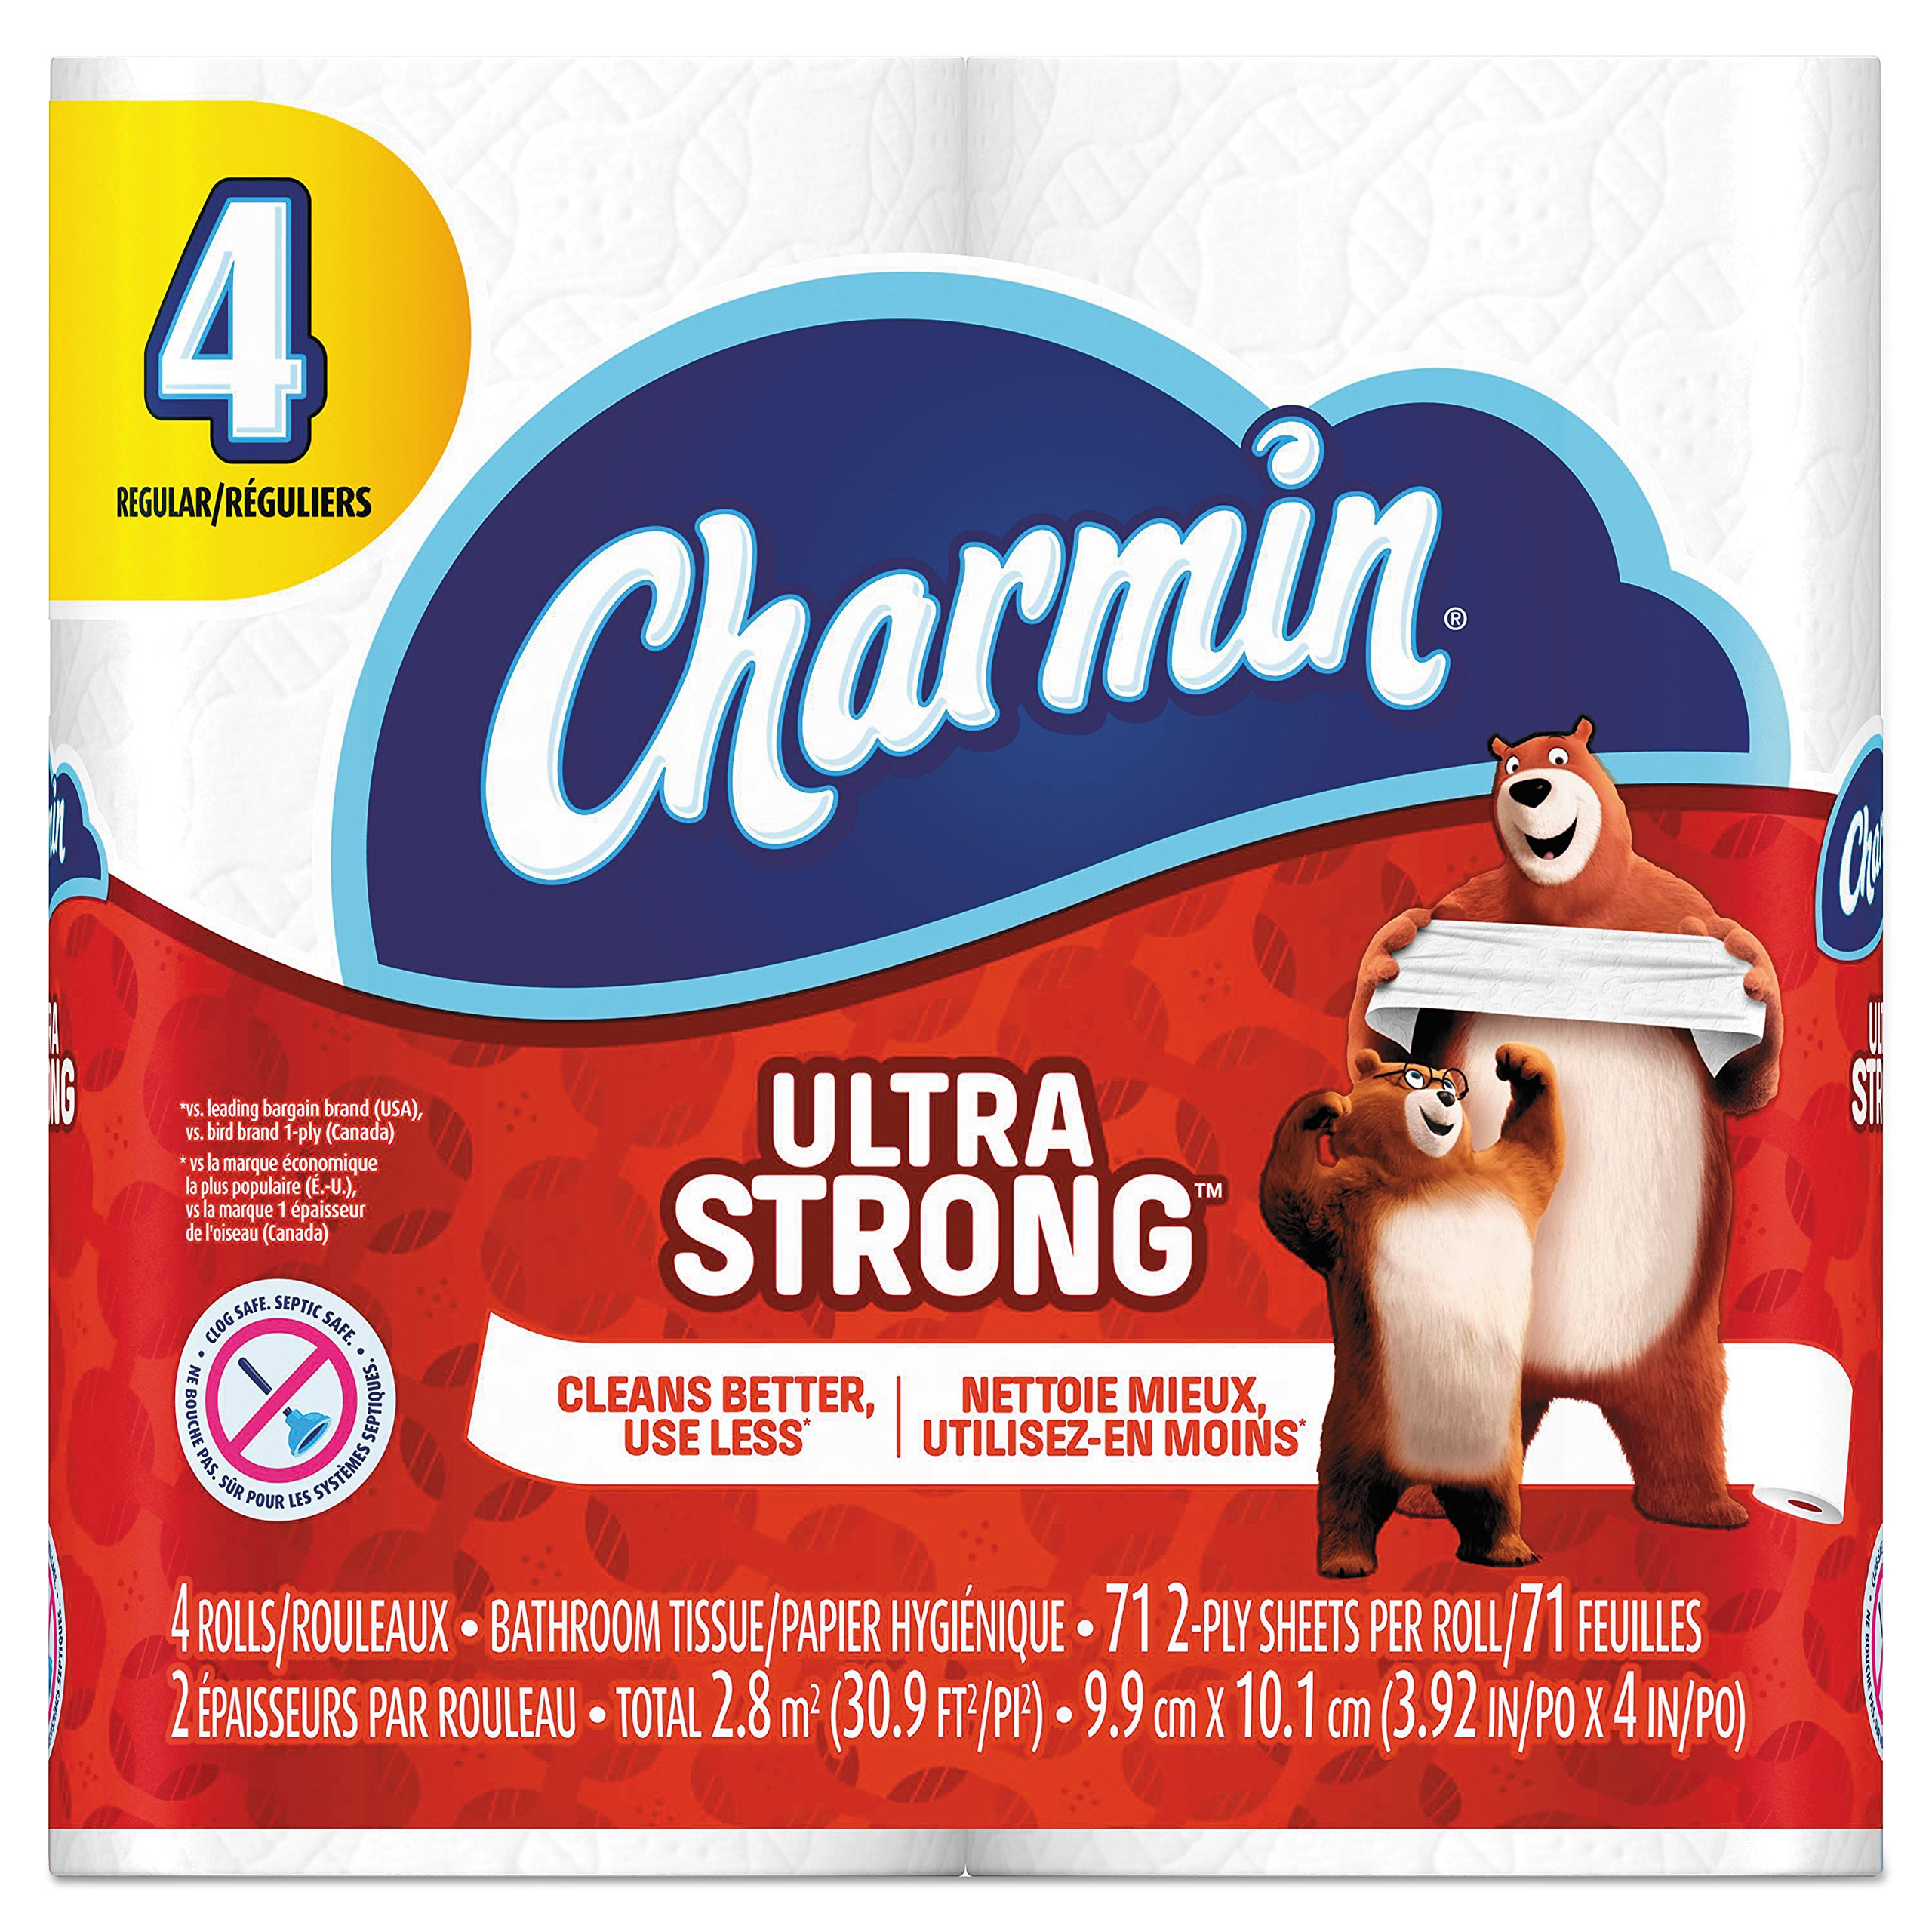 Charmin 94141CT Ultra Strong Bathroom Tissue, 2-Ply, 4x3.92, 77 Per Roll, 4 Rolls Per Pack (Case of 24 Packs)